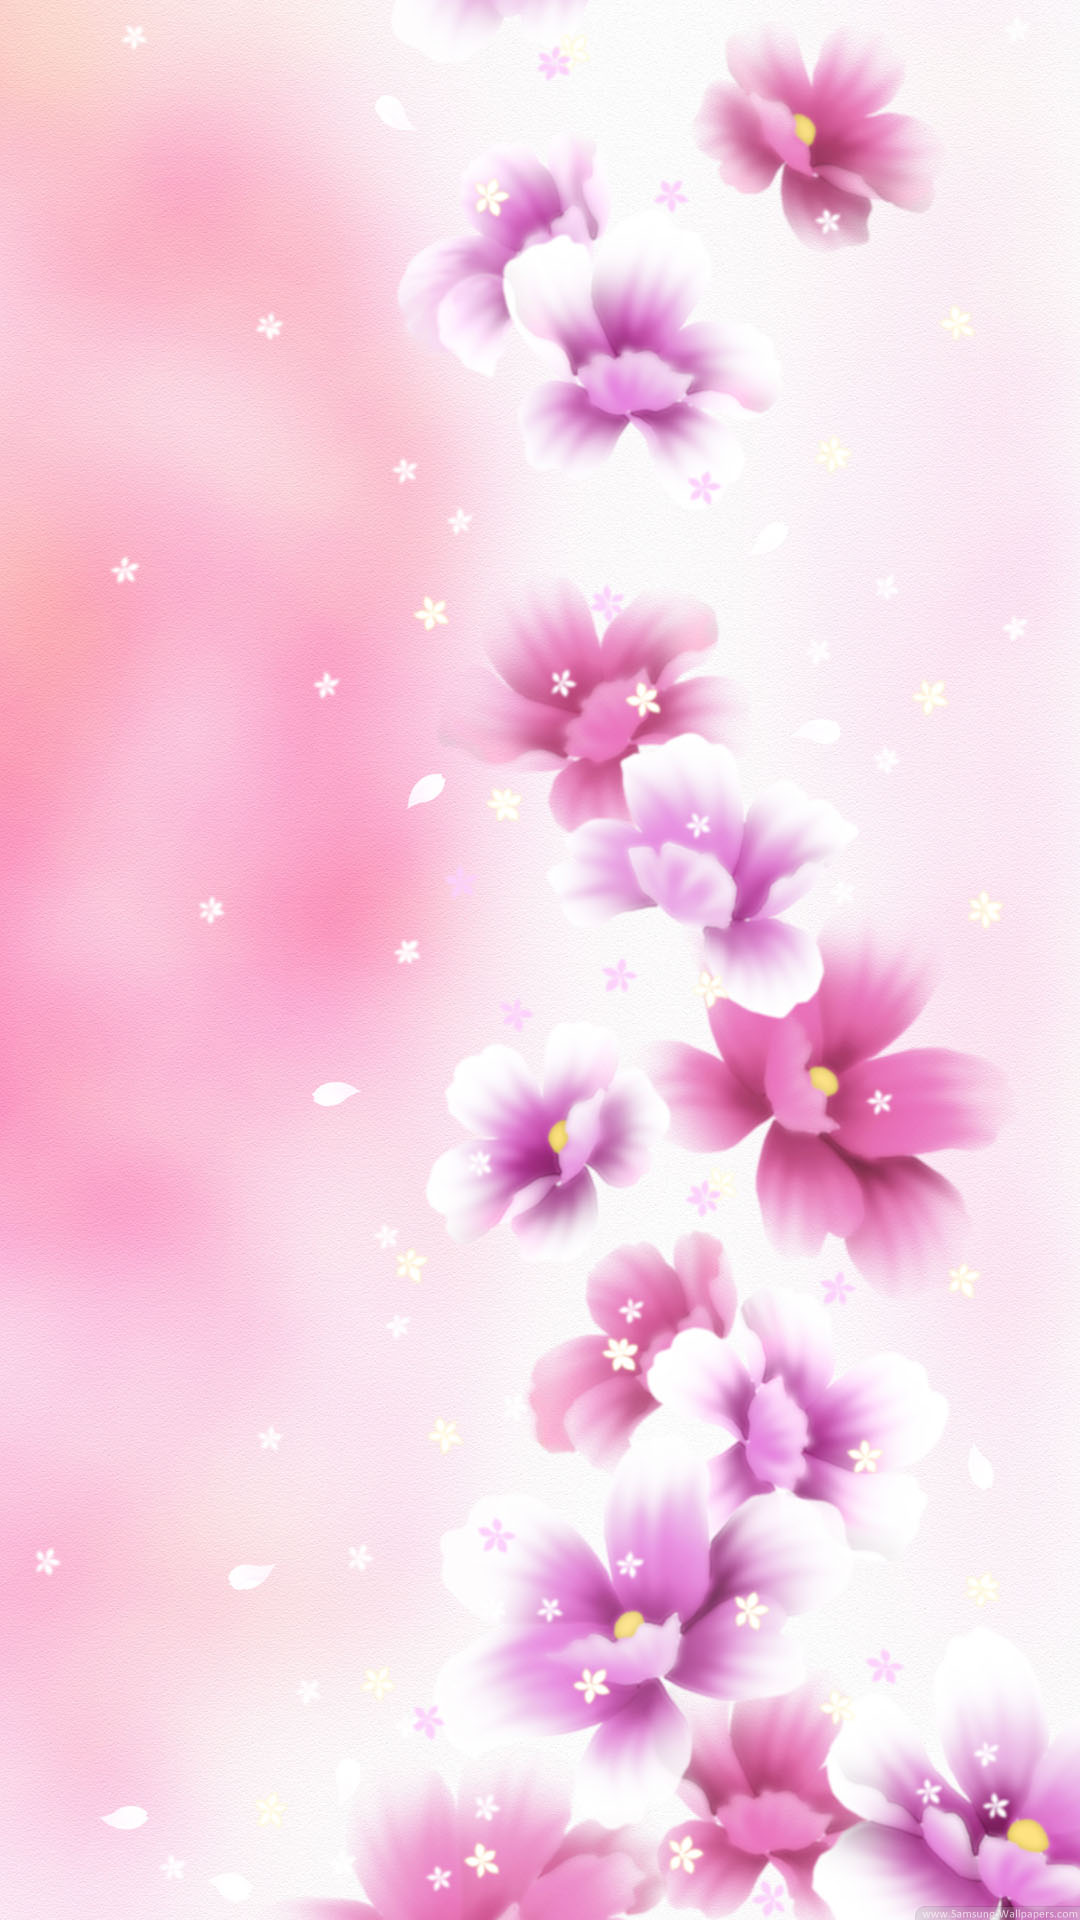 Cute pink smartphone wallpaper iphone wallpaper cute pink smartphone wallpaper voltagebd